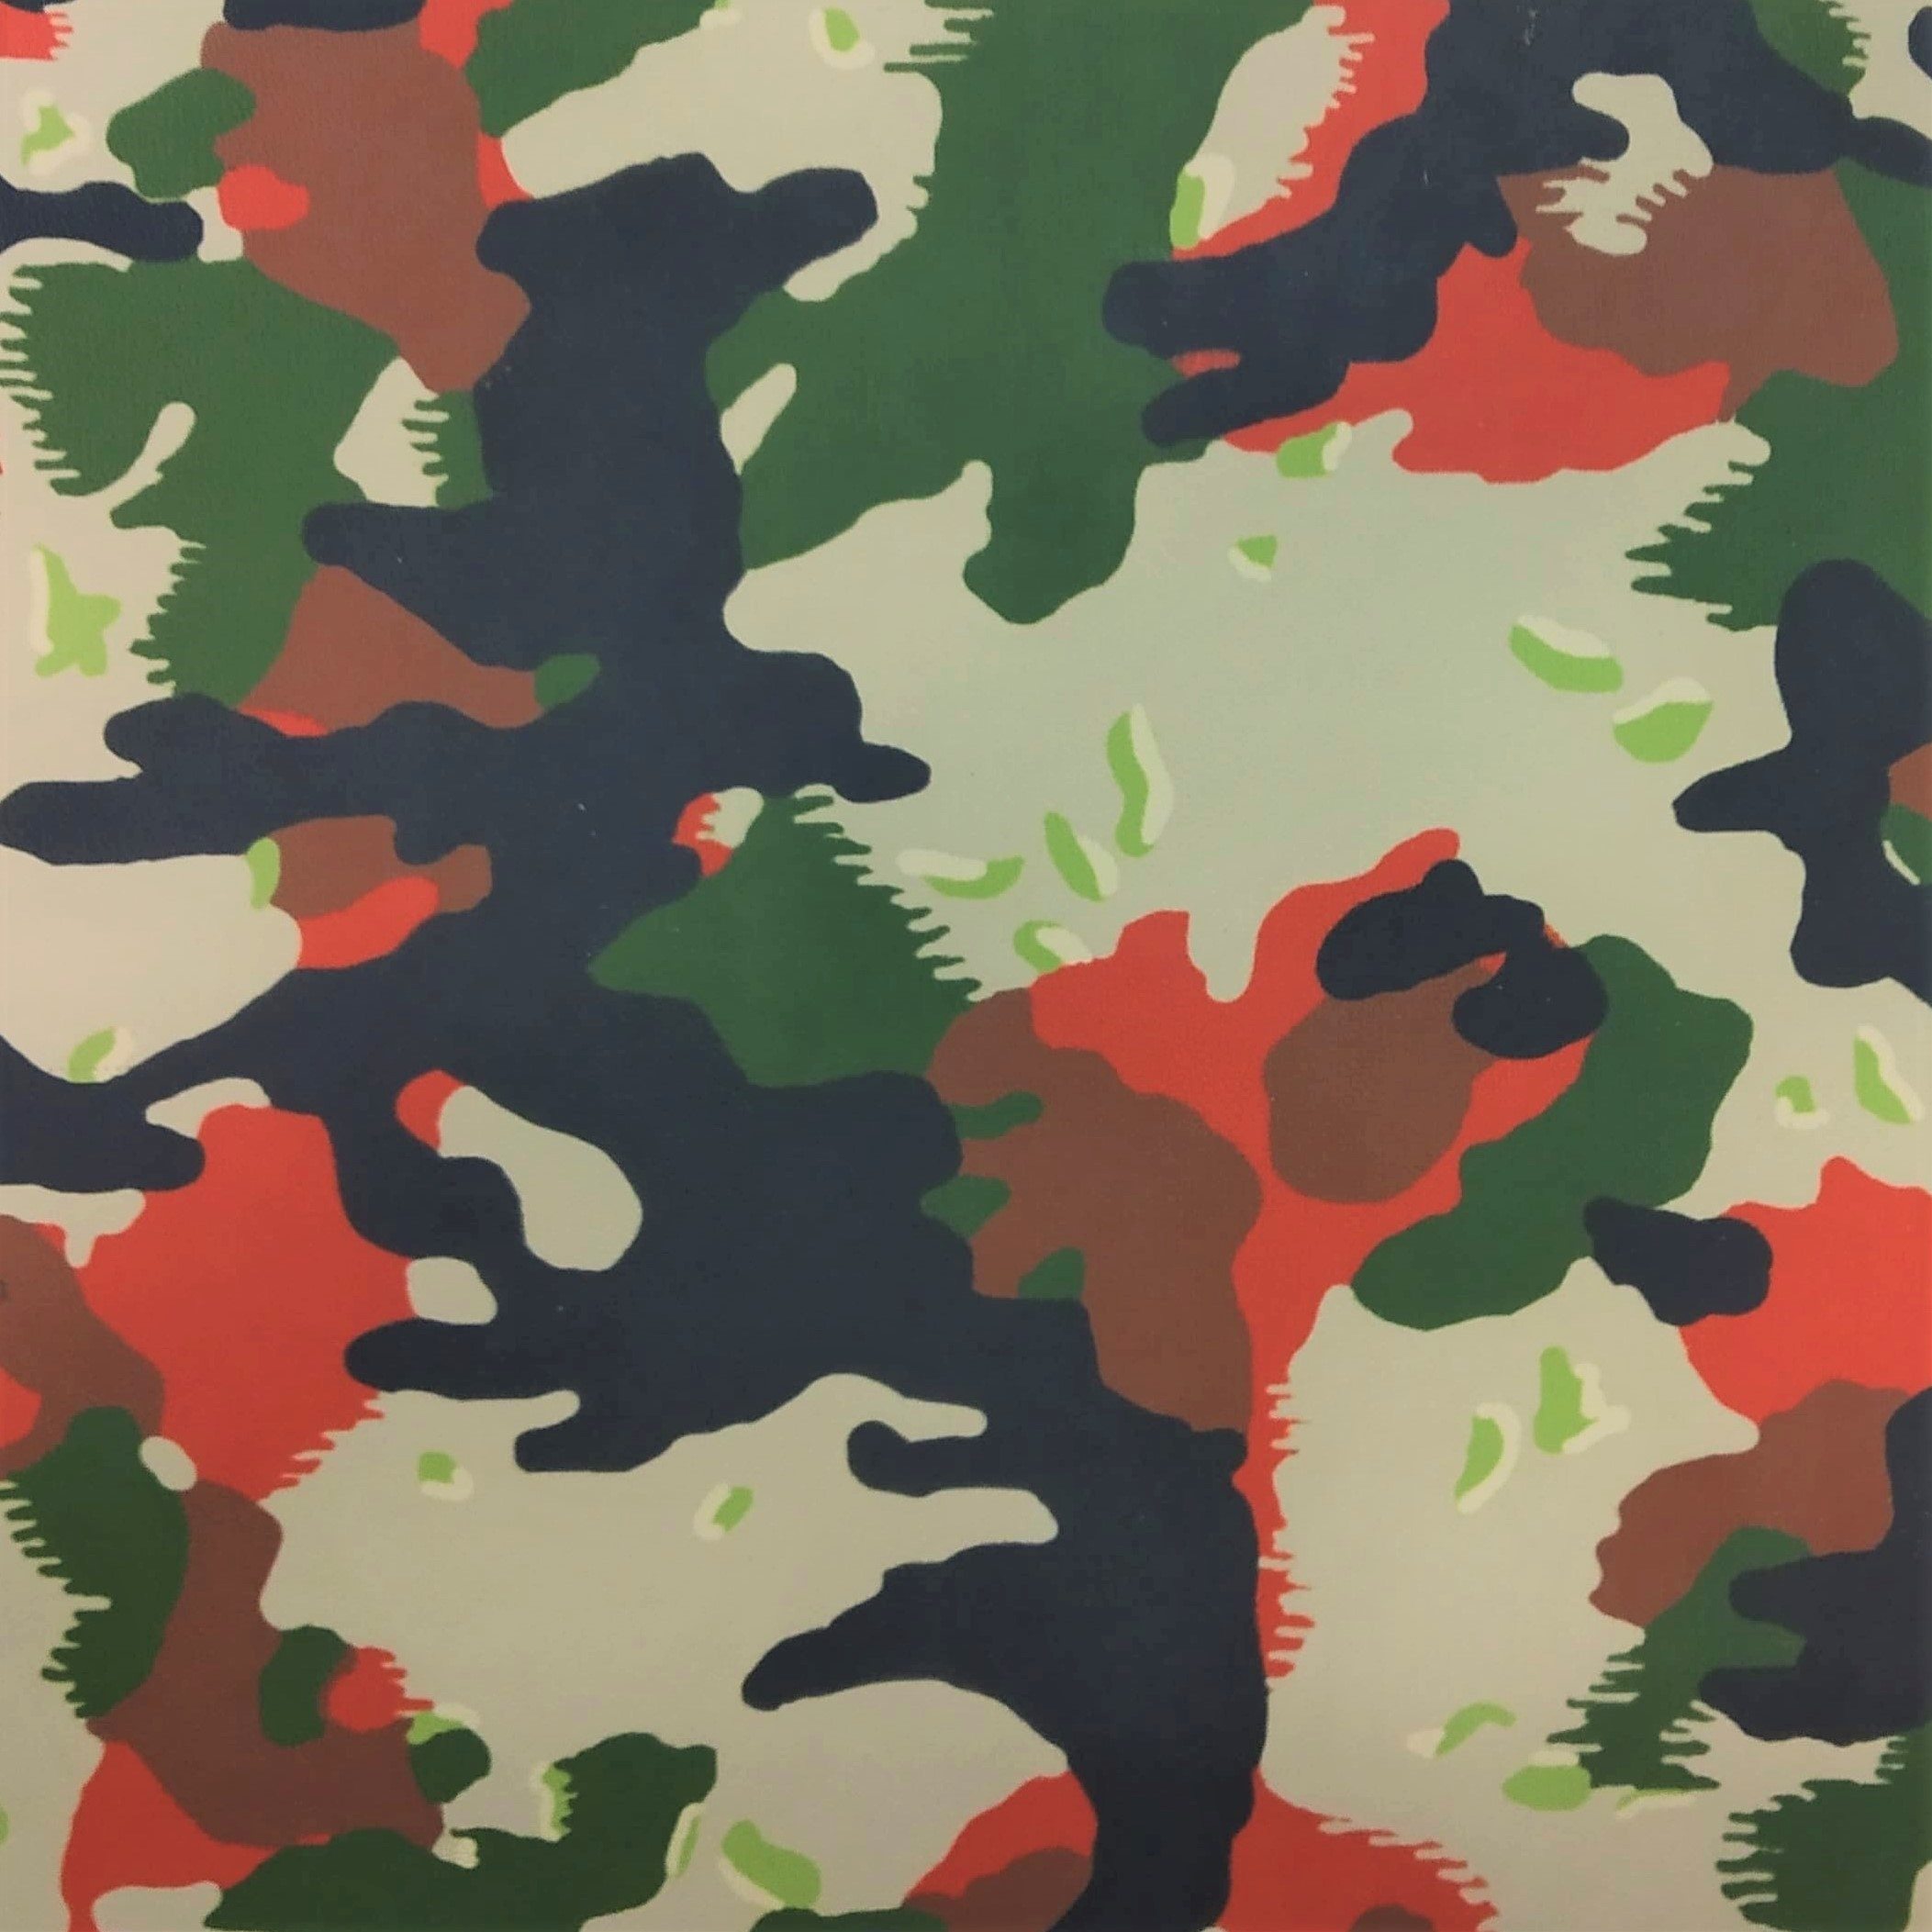 camo TAZ 51 suisse kydex infused etfr